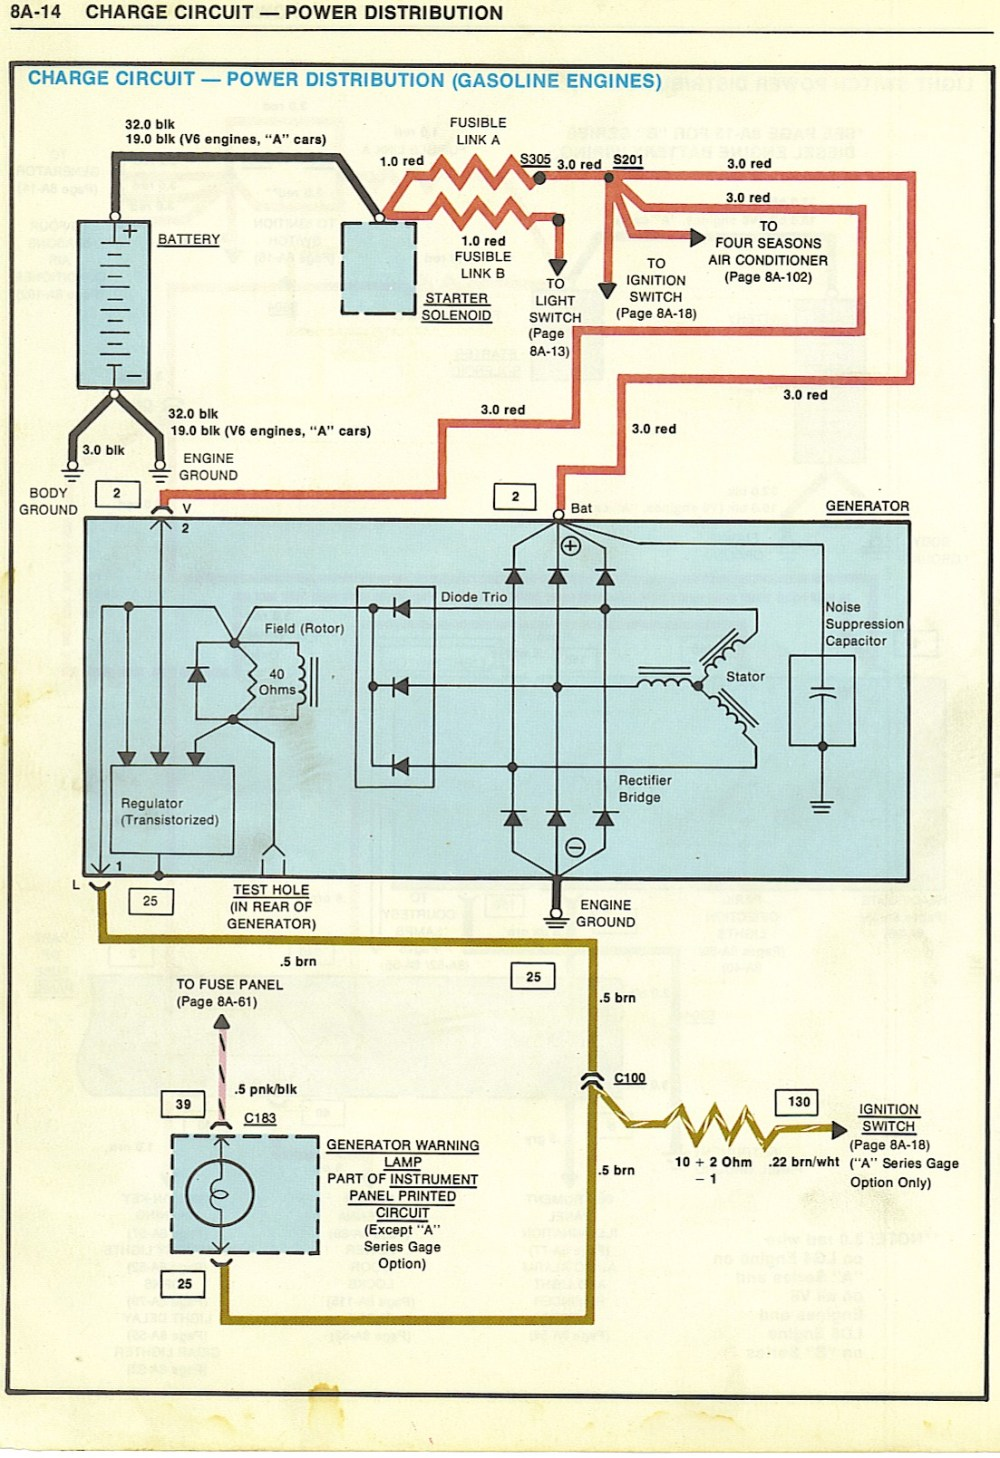 medium resolution of 1987 chevy s10 wiring harness diagram